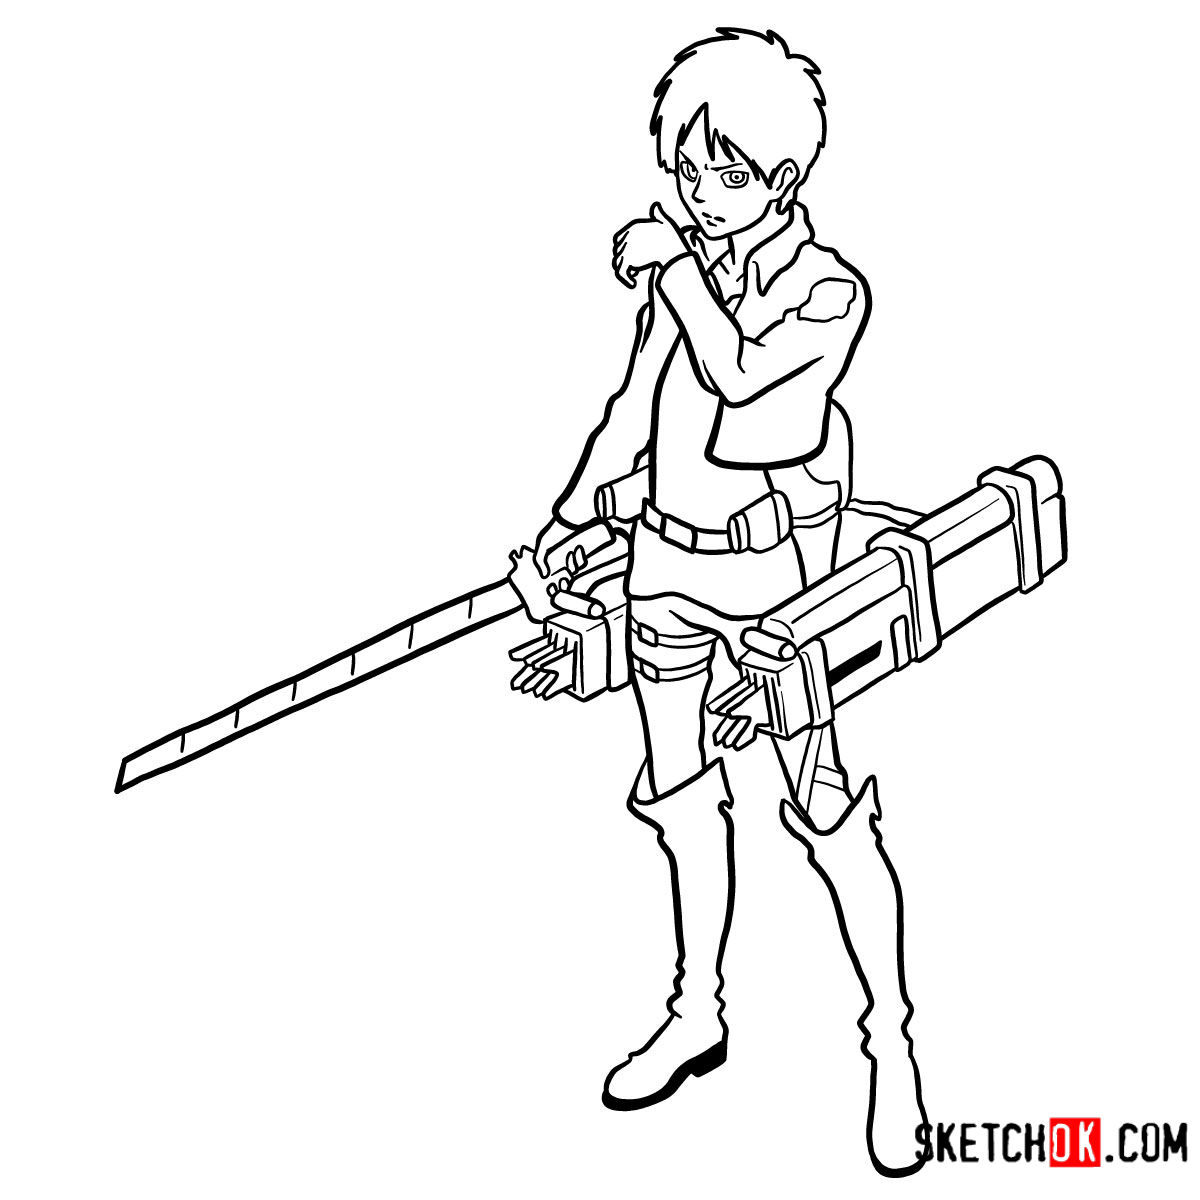 How to draw Eren Jaeger with his weapons